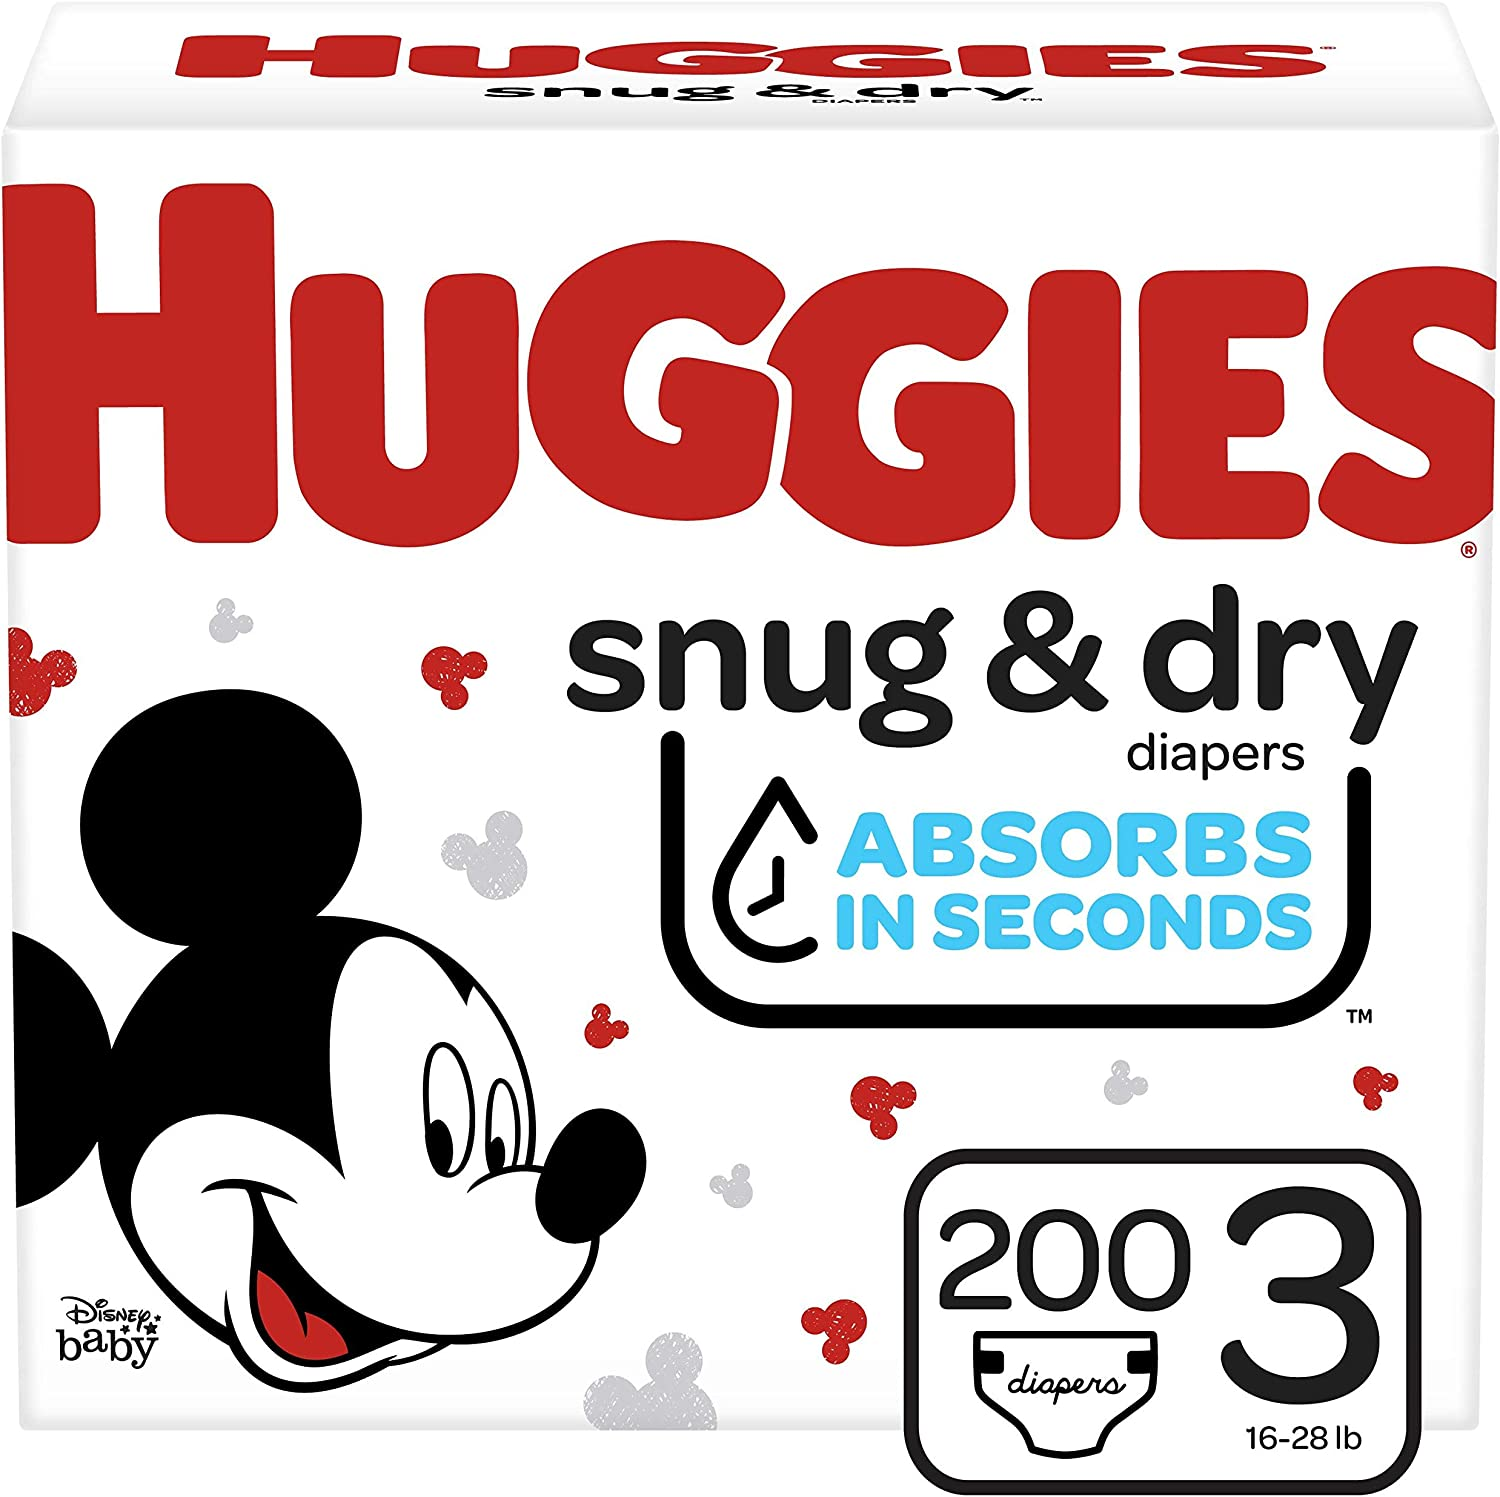 Huggies Snug & Dry Baby Diapers, Size 3, 200 Ct, One Month Supply